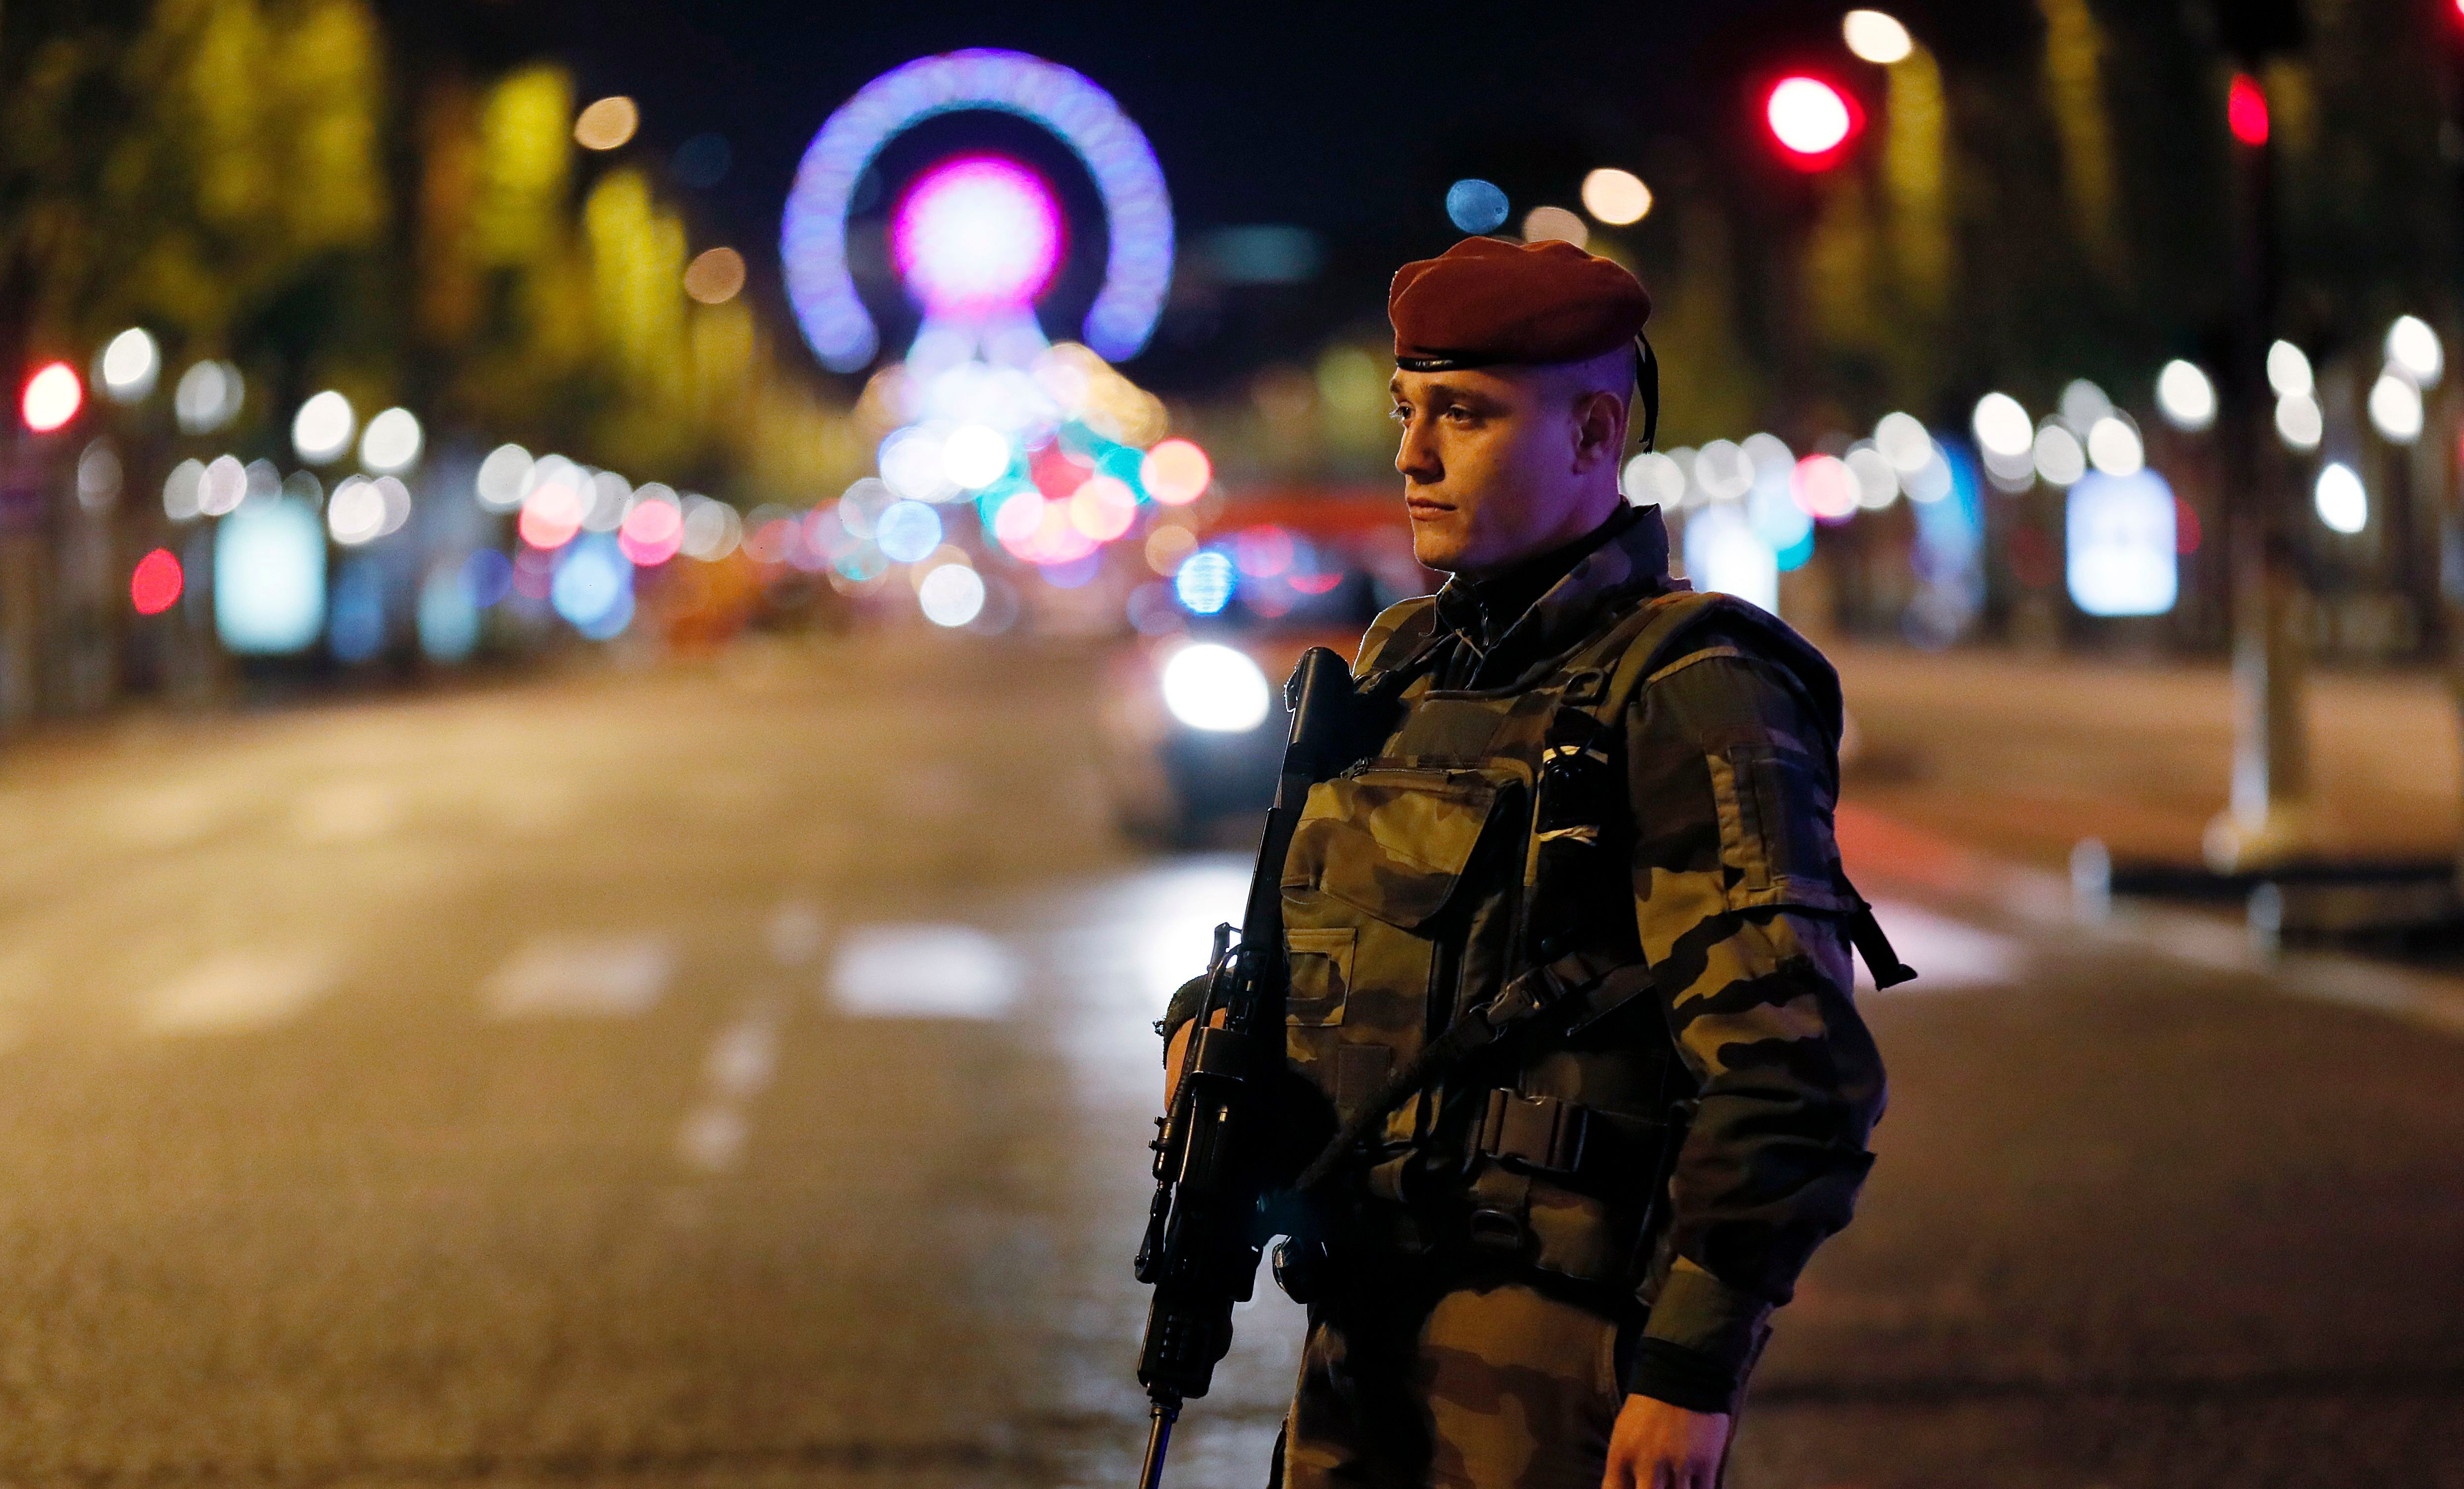 A French soldier stands guard on the Champs Elysees in Paris after a police officer was shot dead, April 20, 2017.